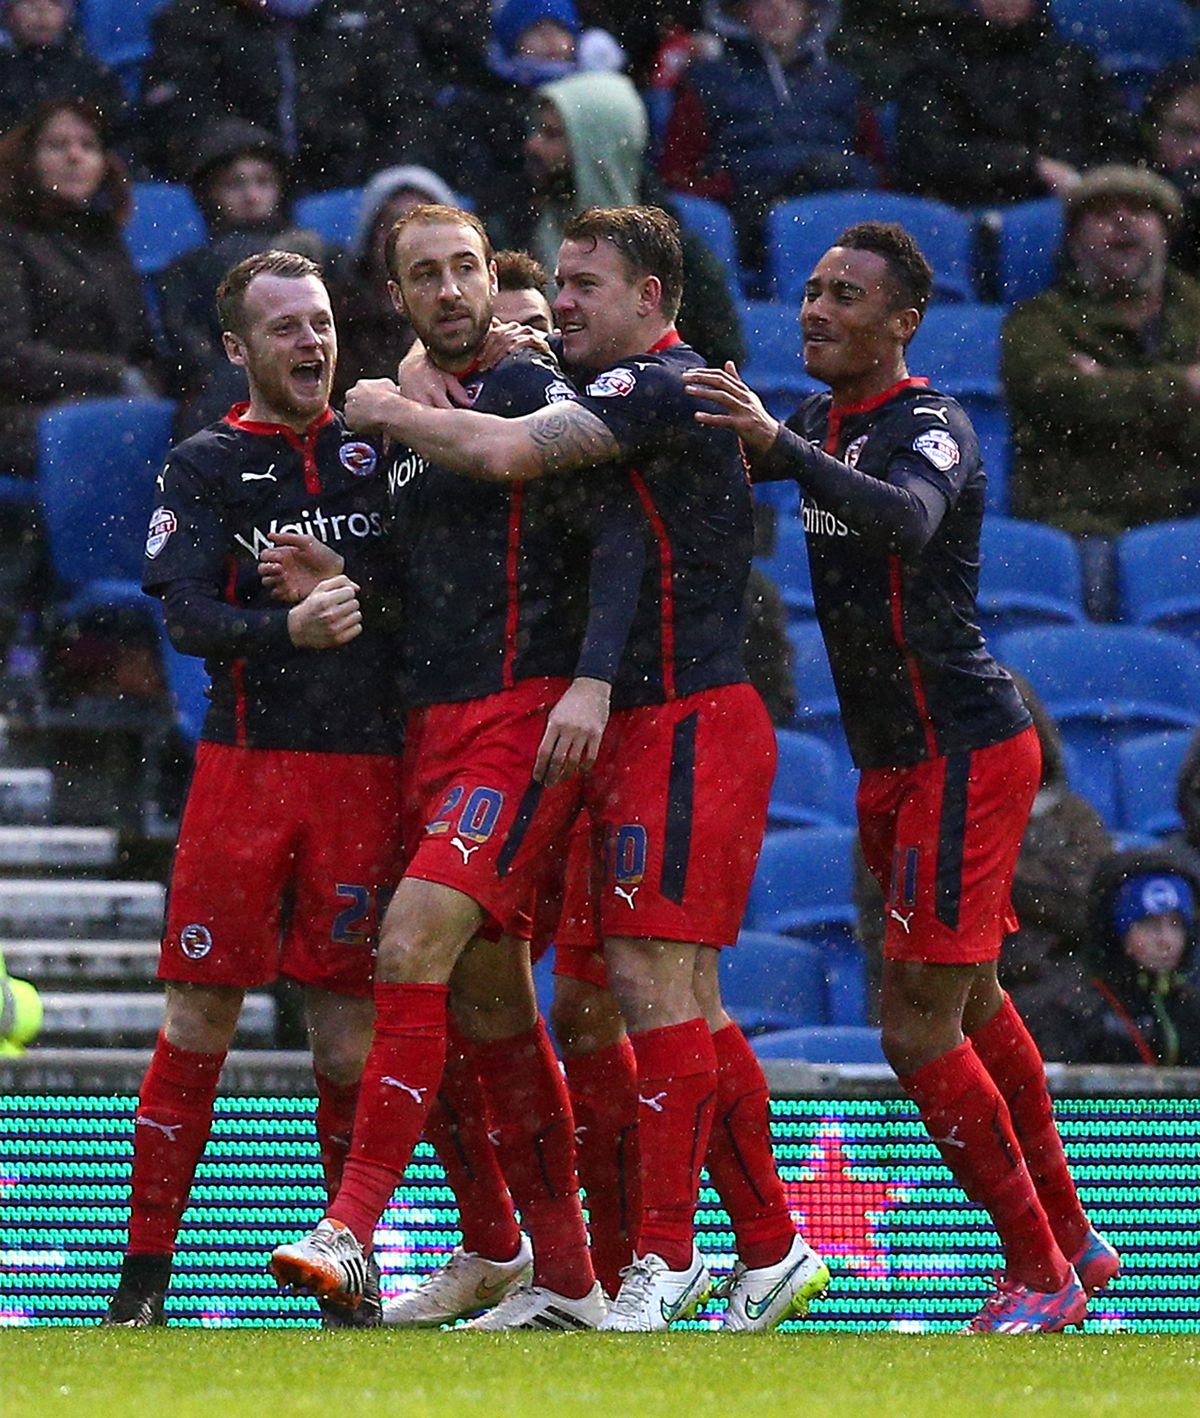 Brighton and Hove Albion v Reading - Sky Bet Championship